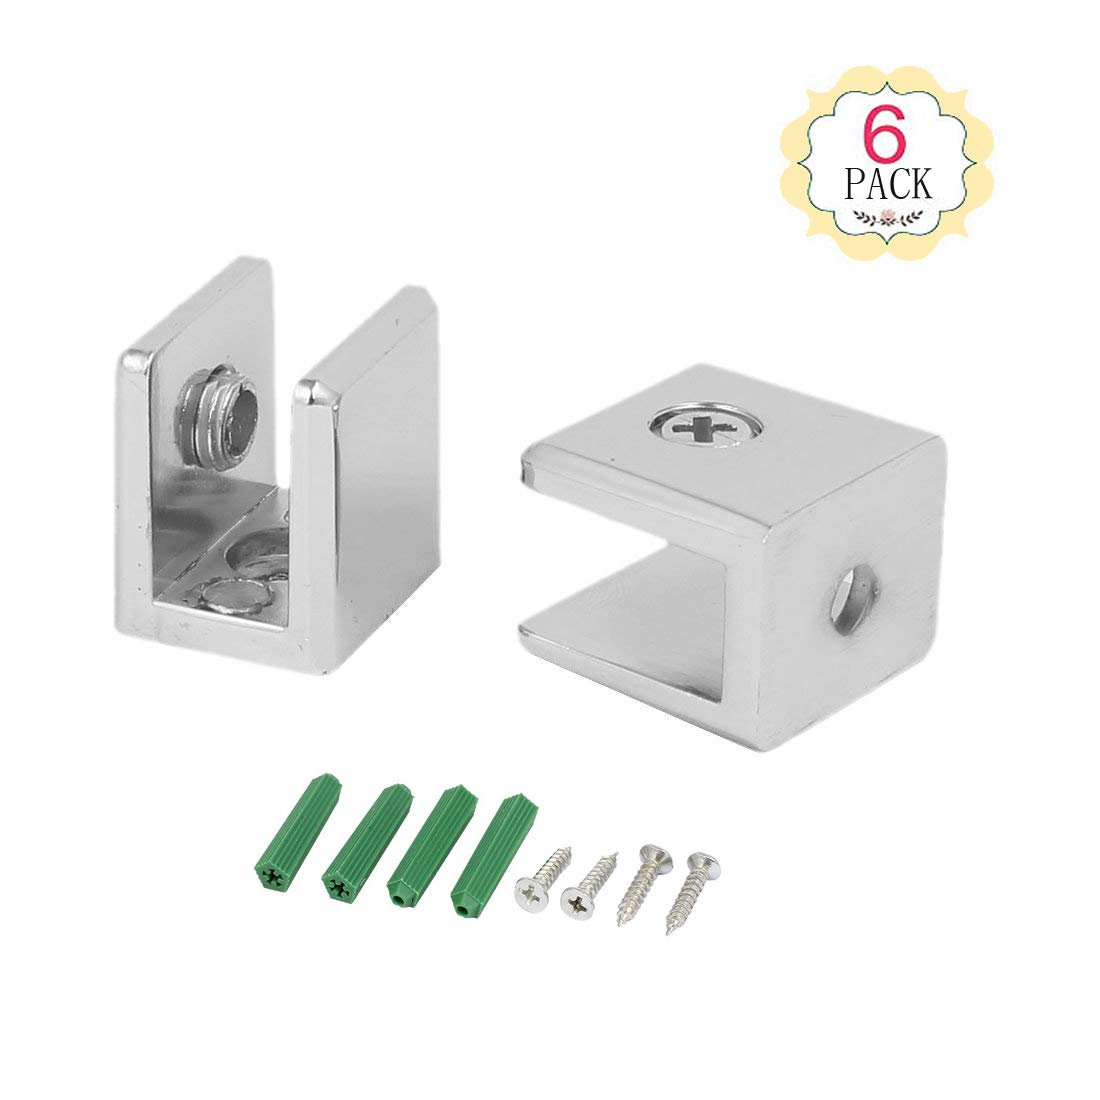 6 Pack Wall Mounted Adjustable Stainless Steel Glass Shelf Clip Clamp Bracket Support (6PCS)